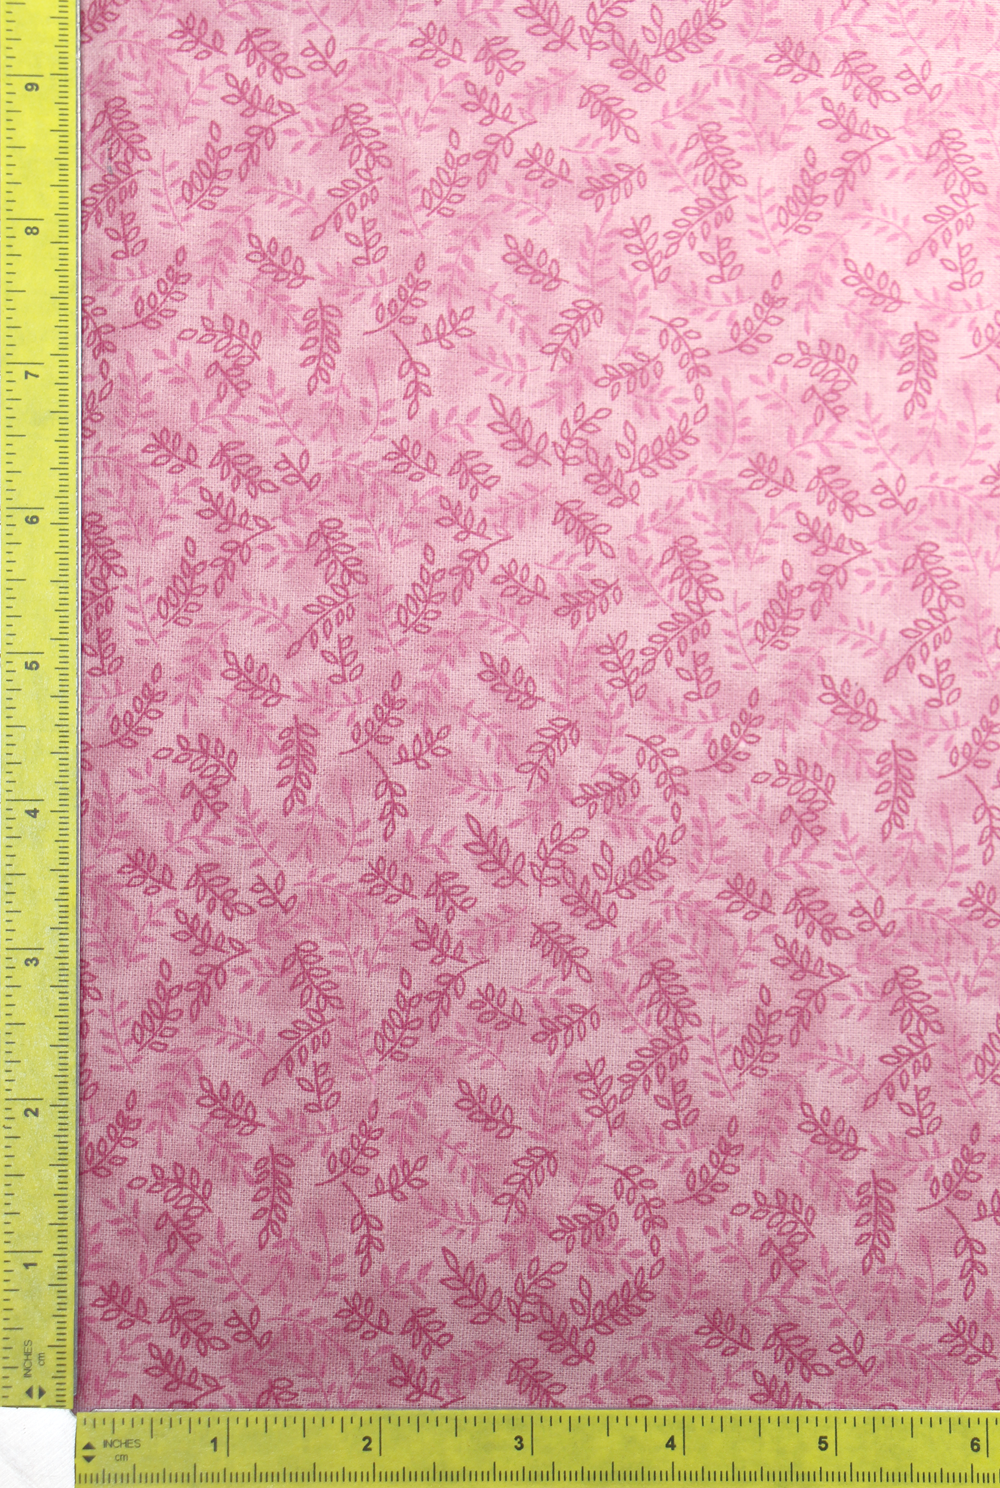 Pink Tonal Ferns fabric by the yard